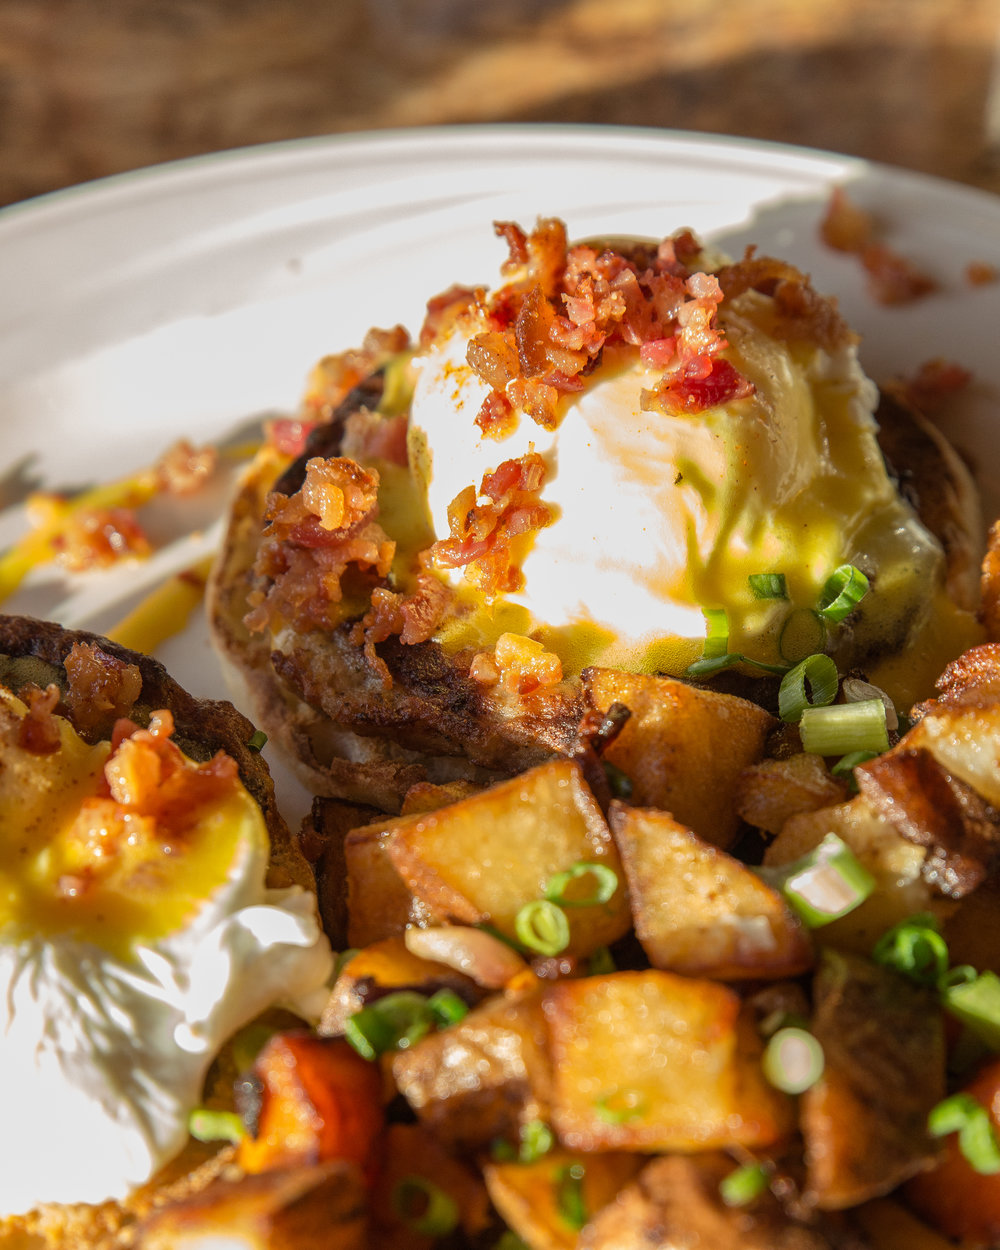 The Chef Benedict, is reminiscent of an open sandwich, serving up two poached eggs over sausage patties and English muffins, topped with Hollandaise and chopped bacon.